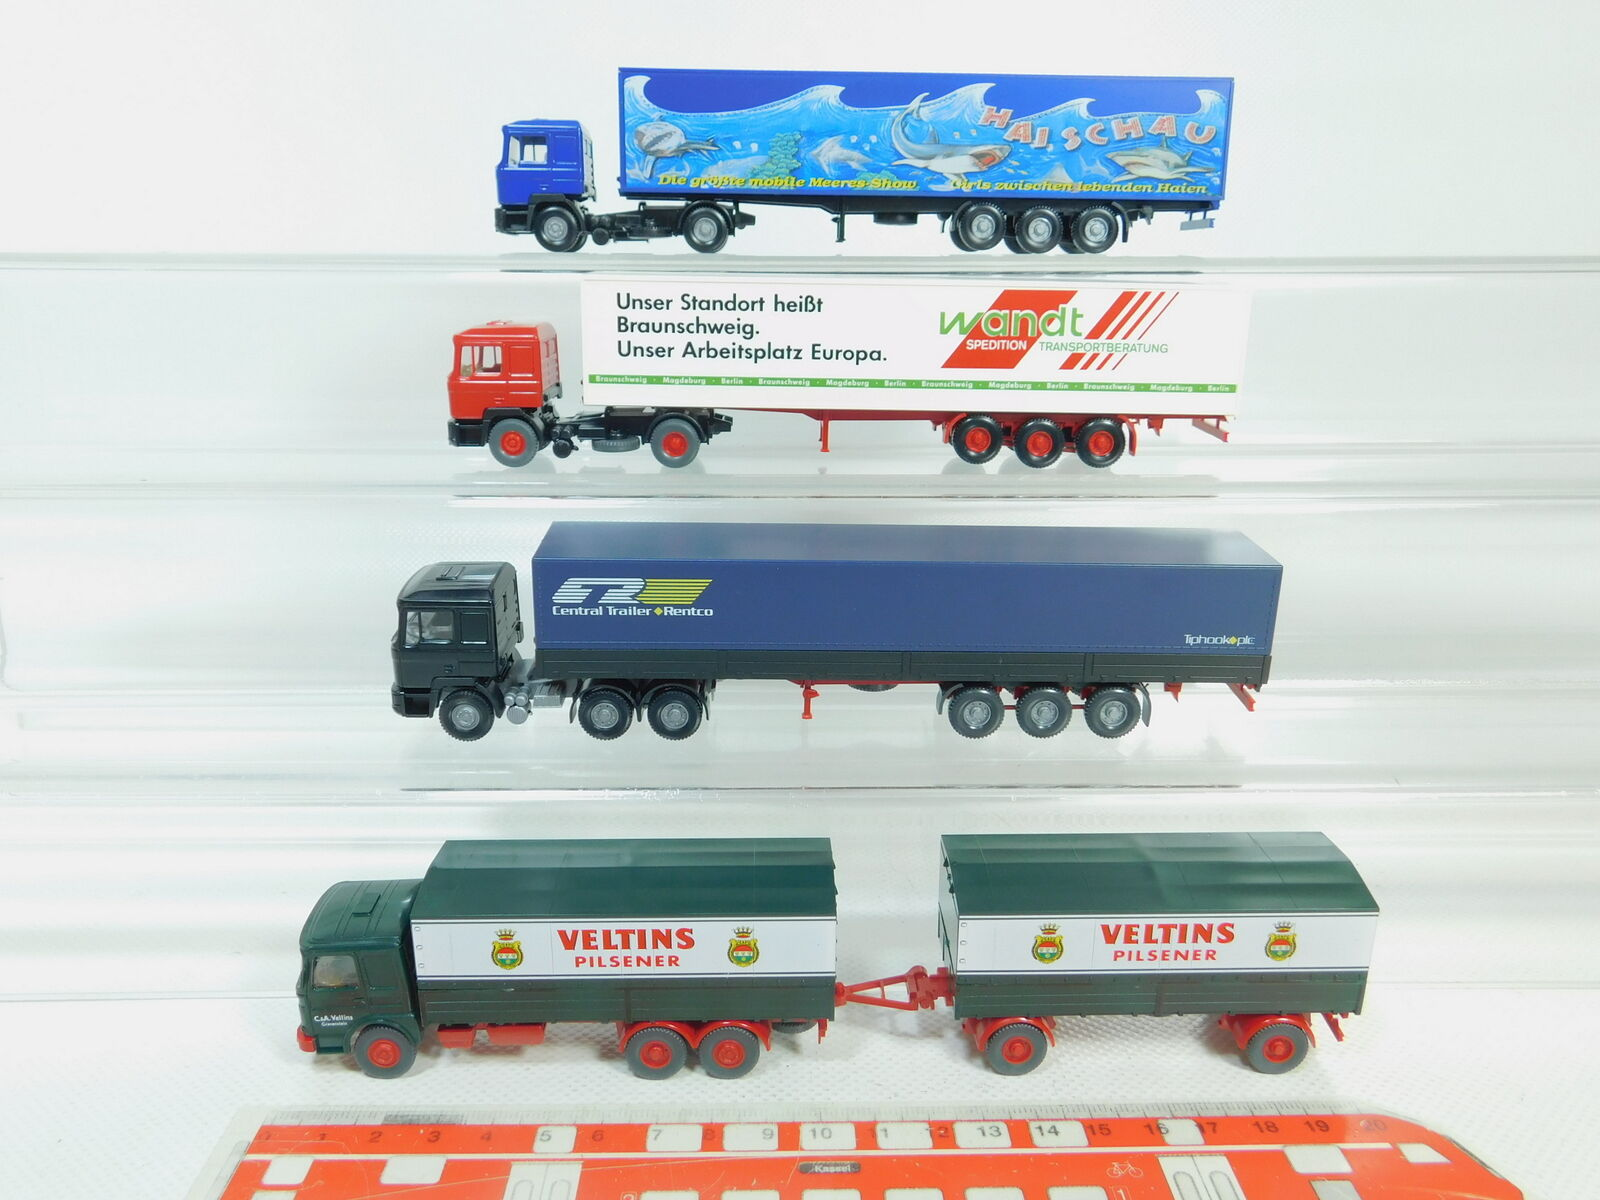 BO701-0,5x Wiking H0 1 87 Lastwagen MAN  Wandt + Haischau + Veltins etc, s.g.